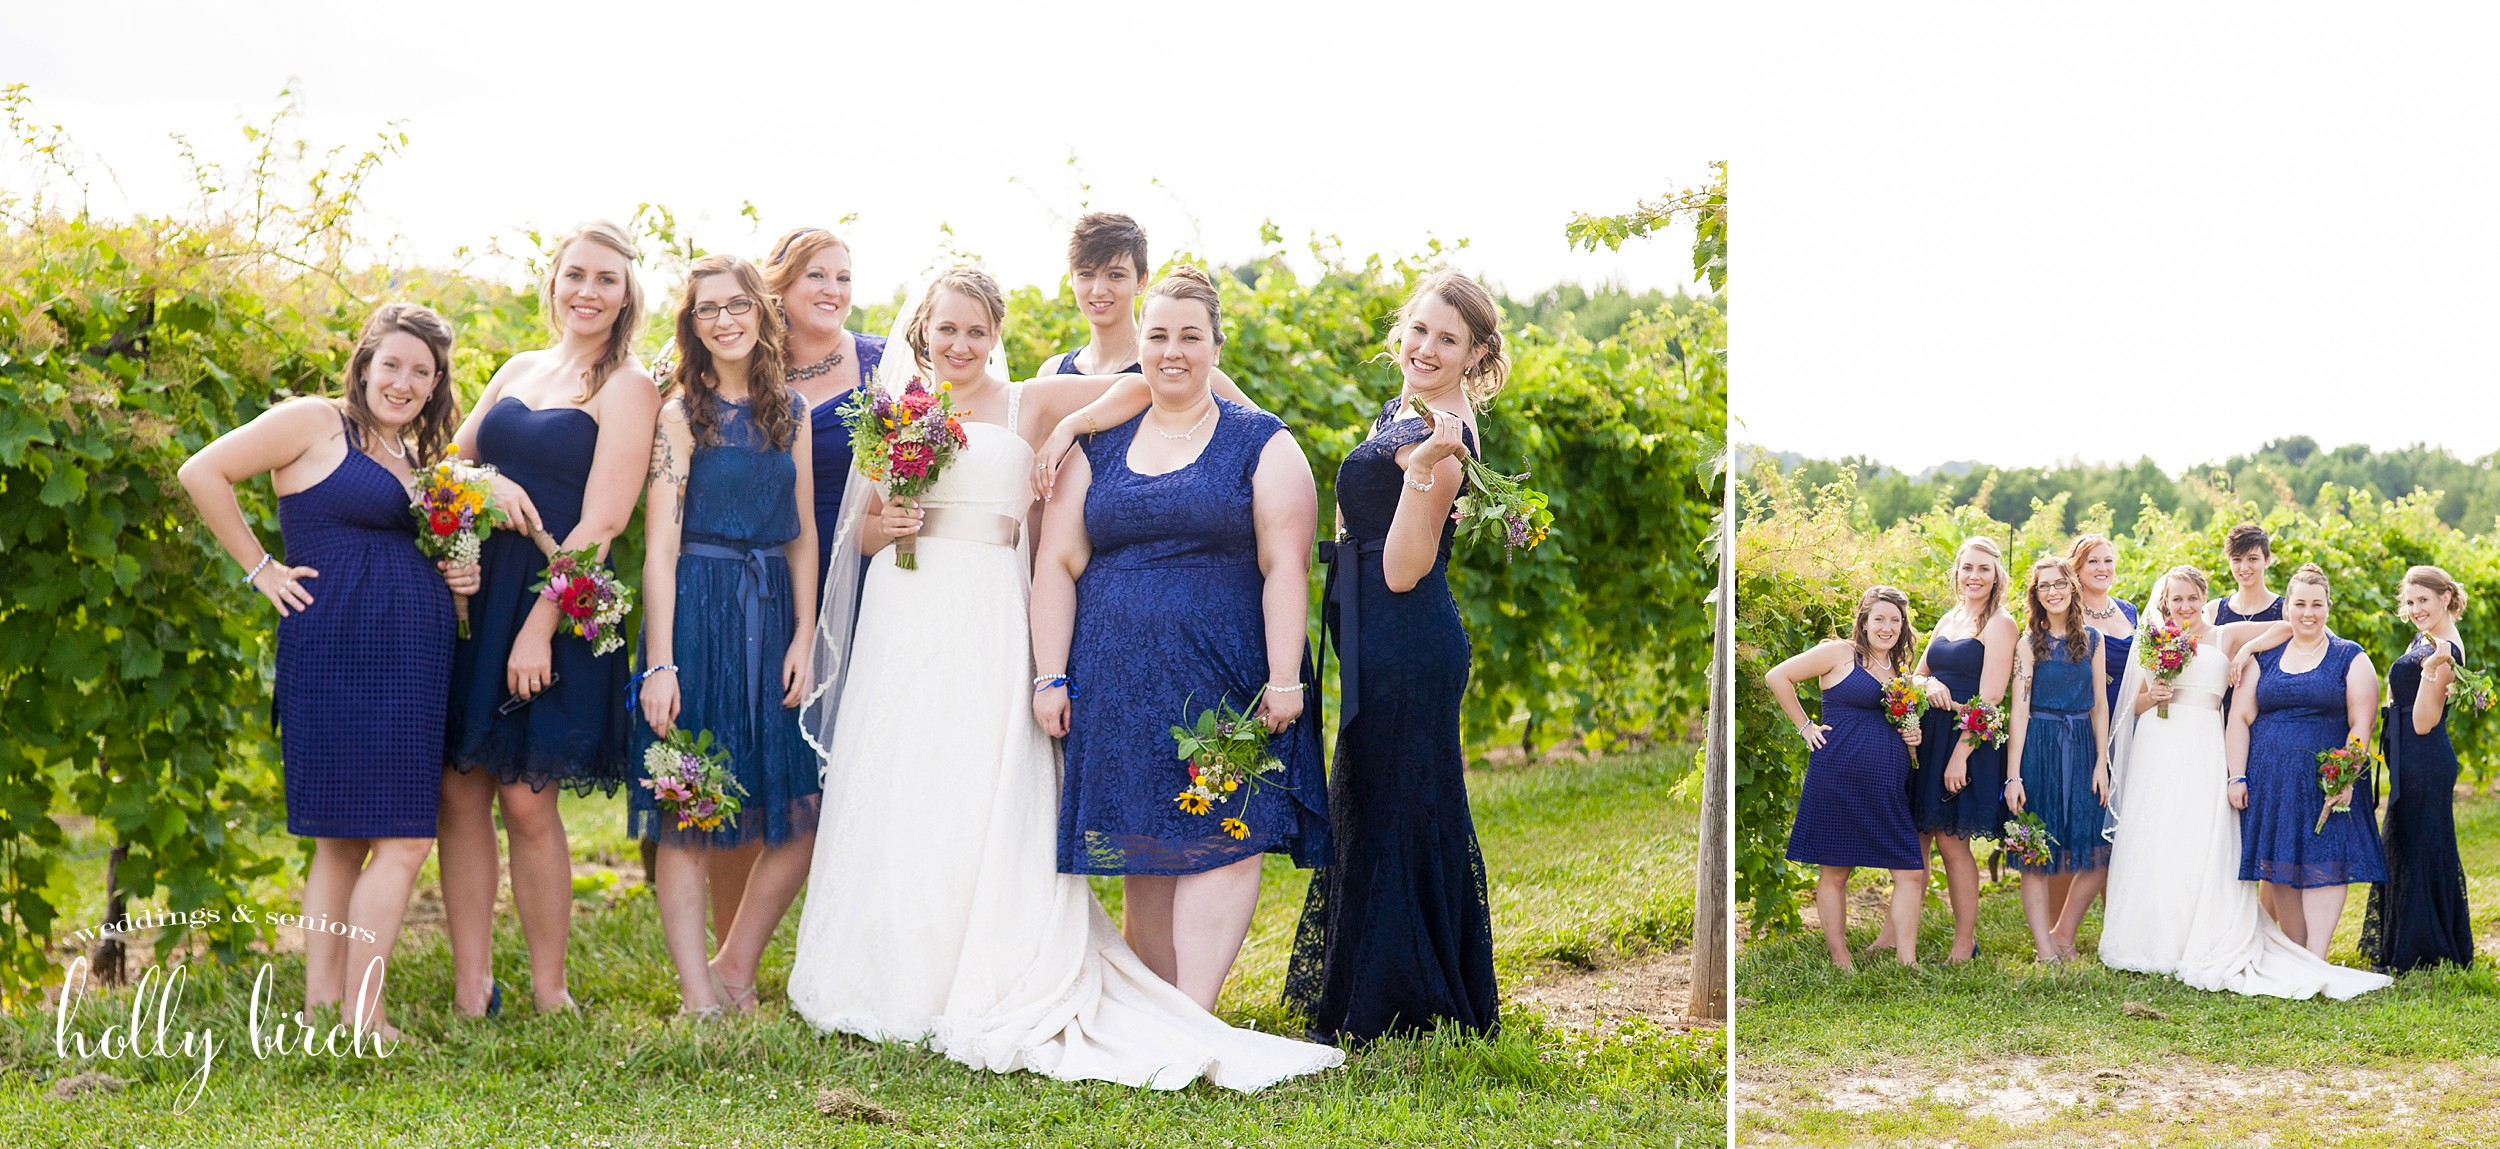 various blue bridemaid dresses